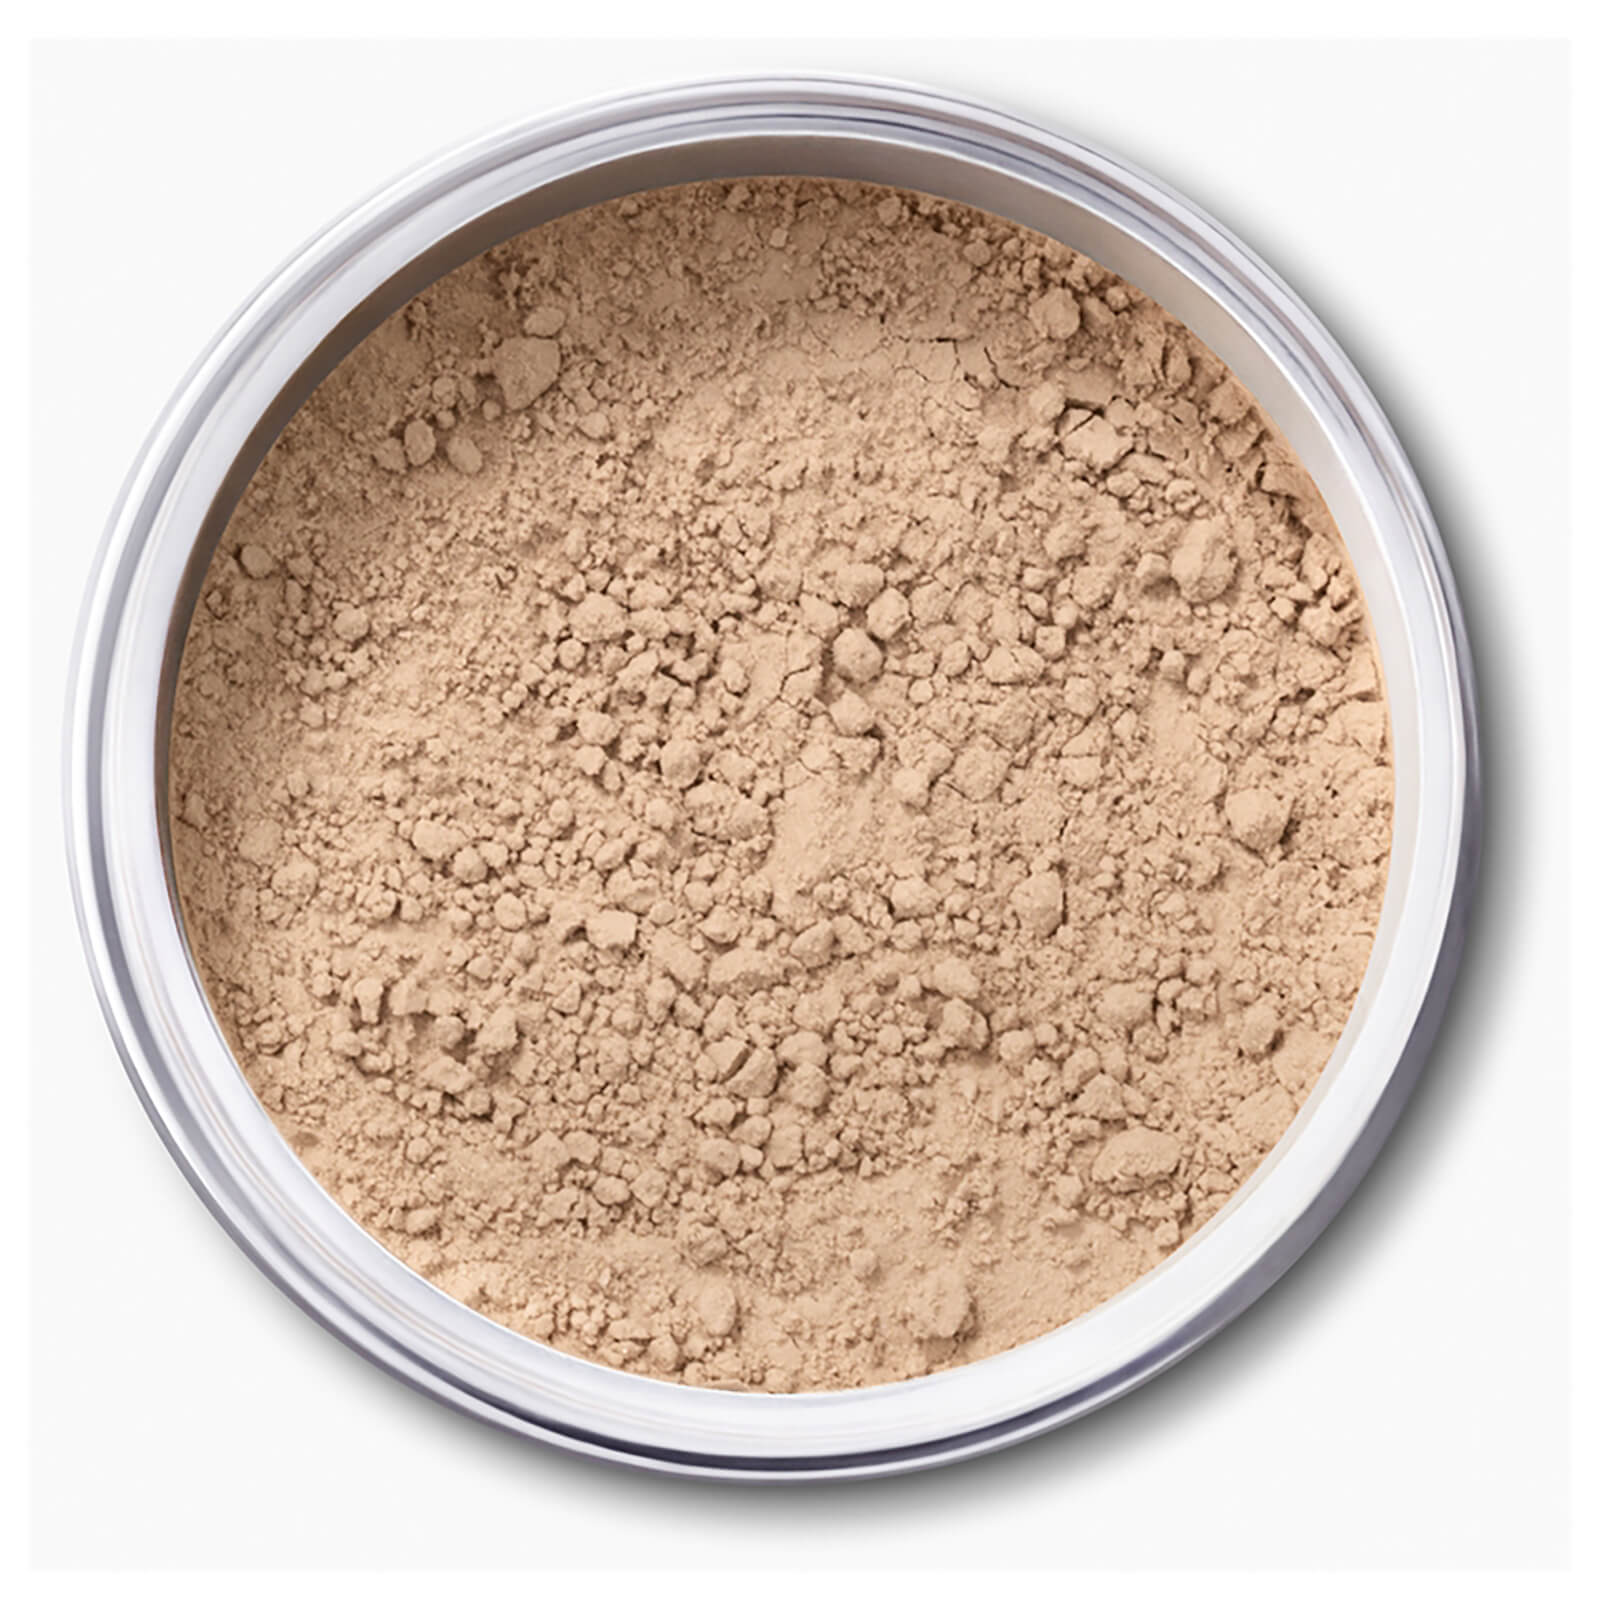 Ex1 Cosmetics Pure Crushed Mineral Powder Foundation 8g Various Shades Beautyexpert